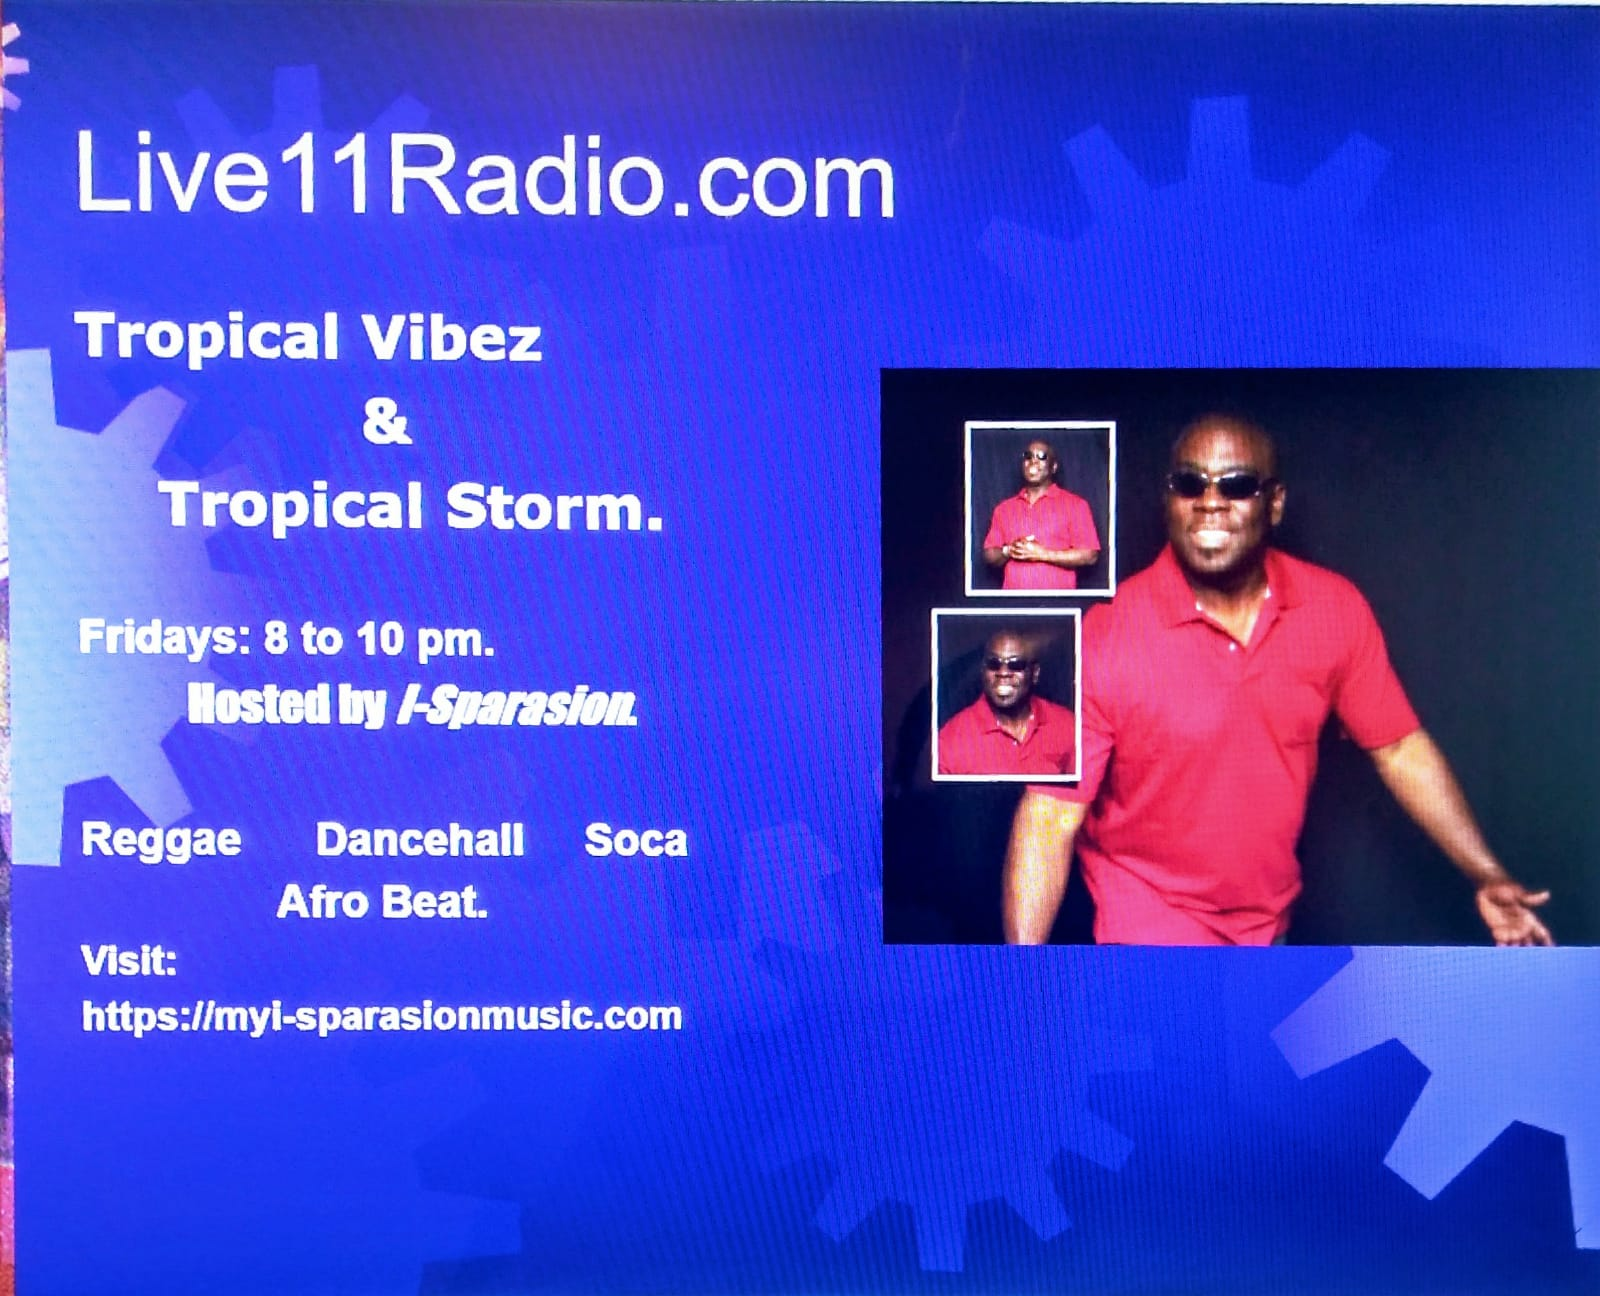 Tropical Vibez and Tropical Storm